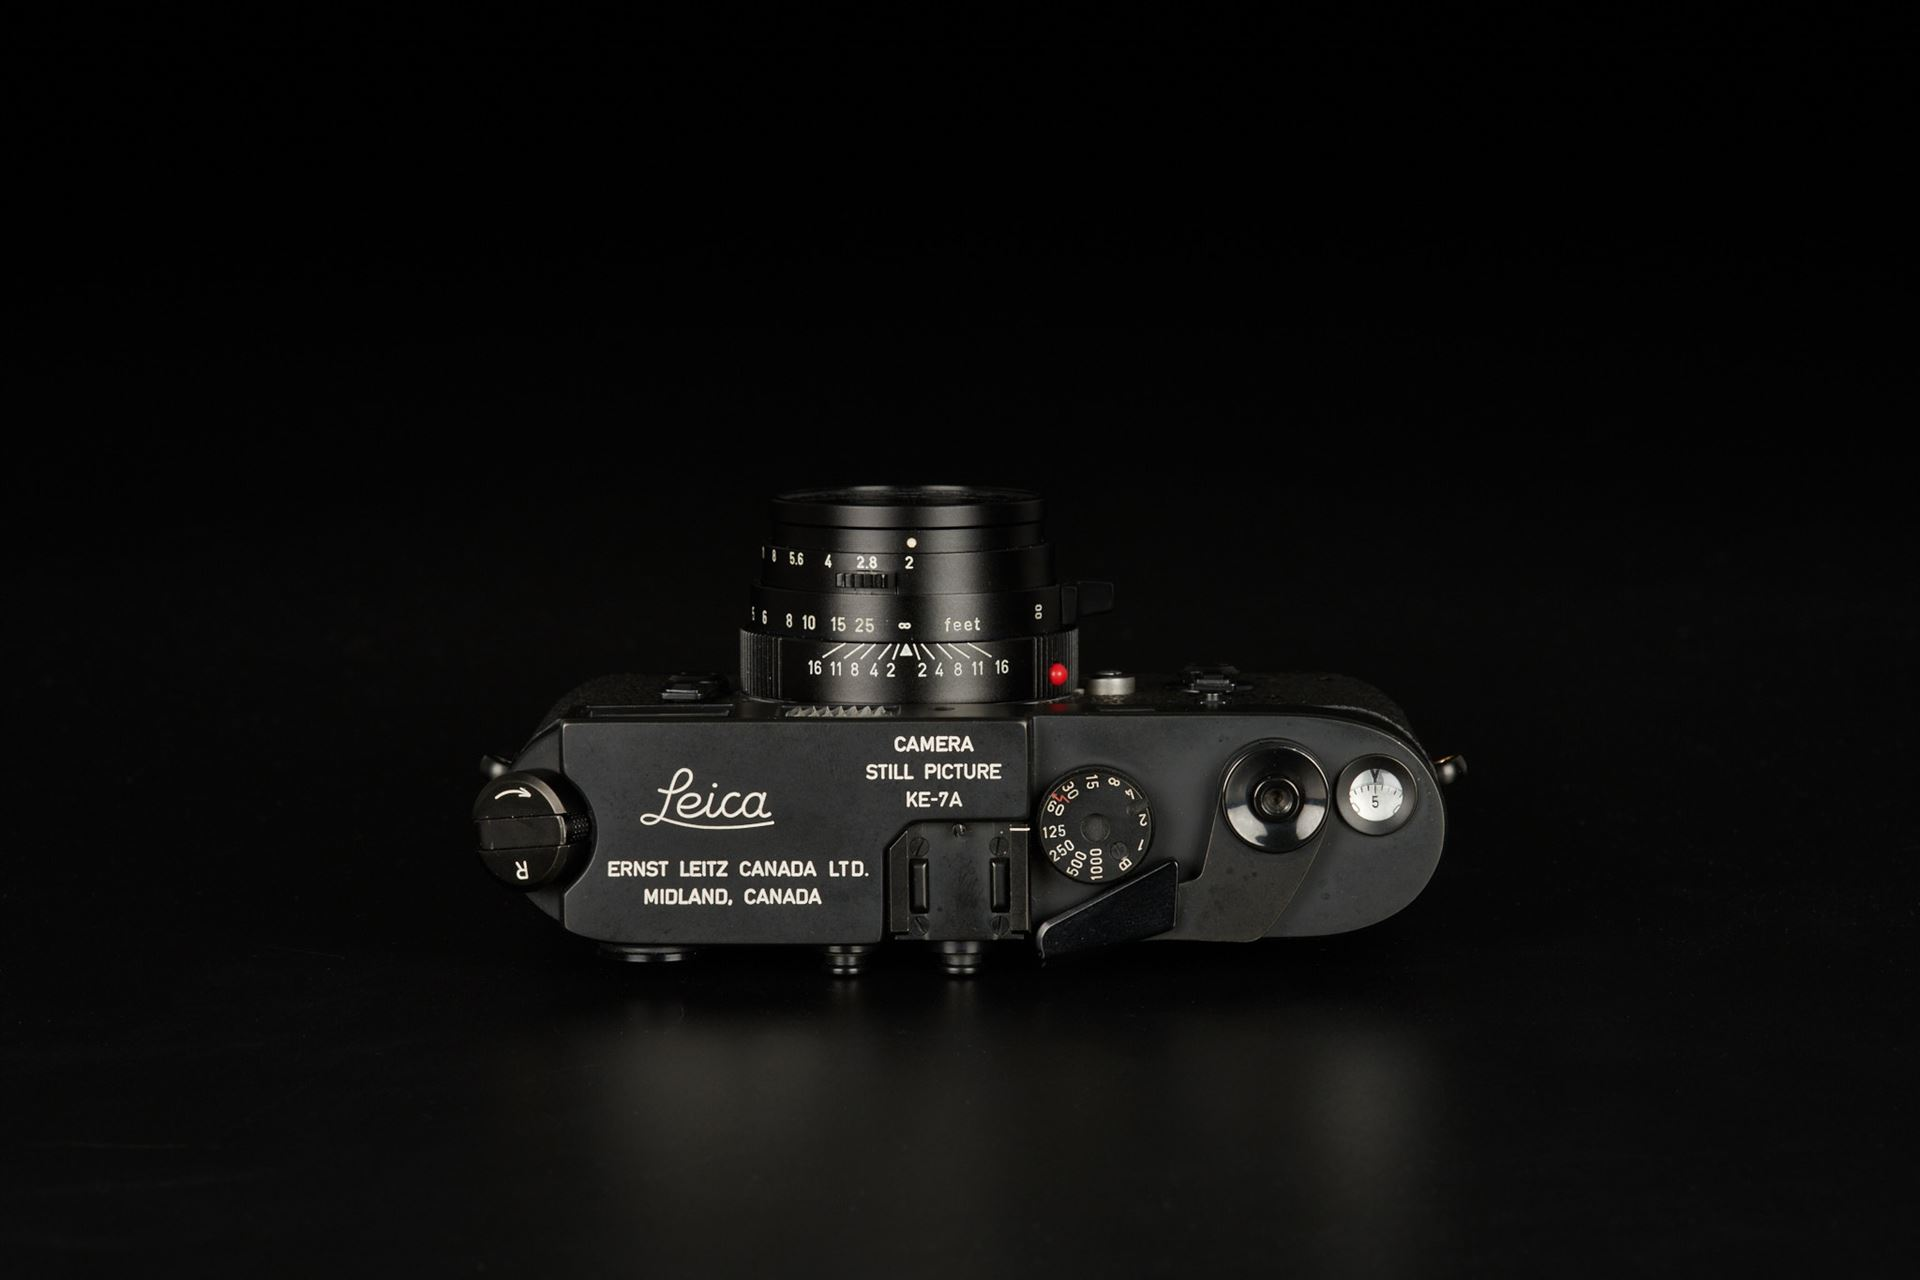 Picture of leica ke-7a m4 military set with elcan 50mm f/2